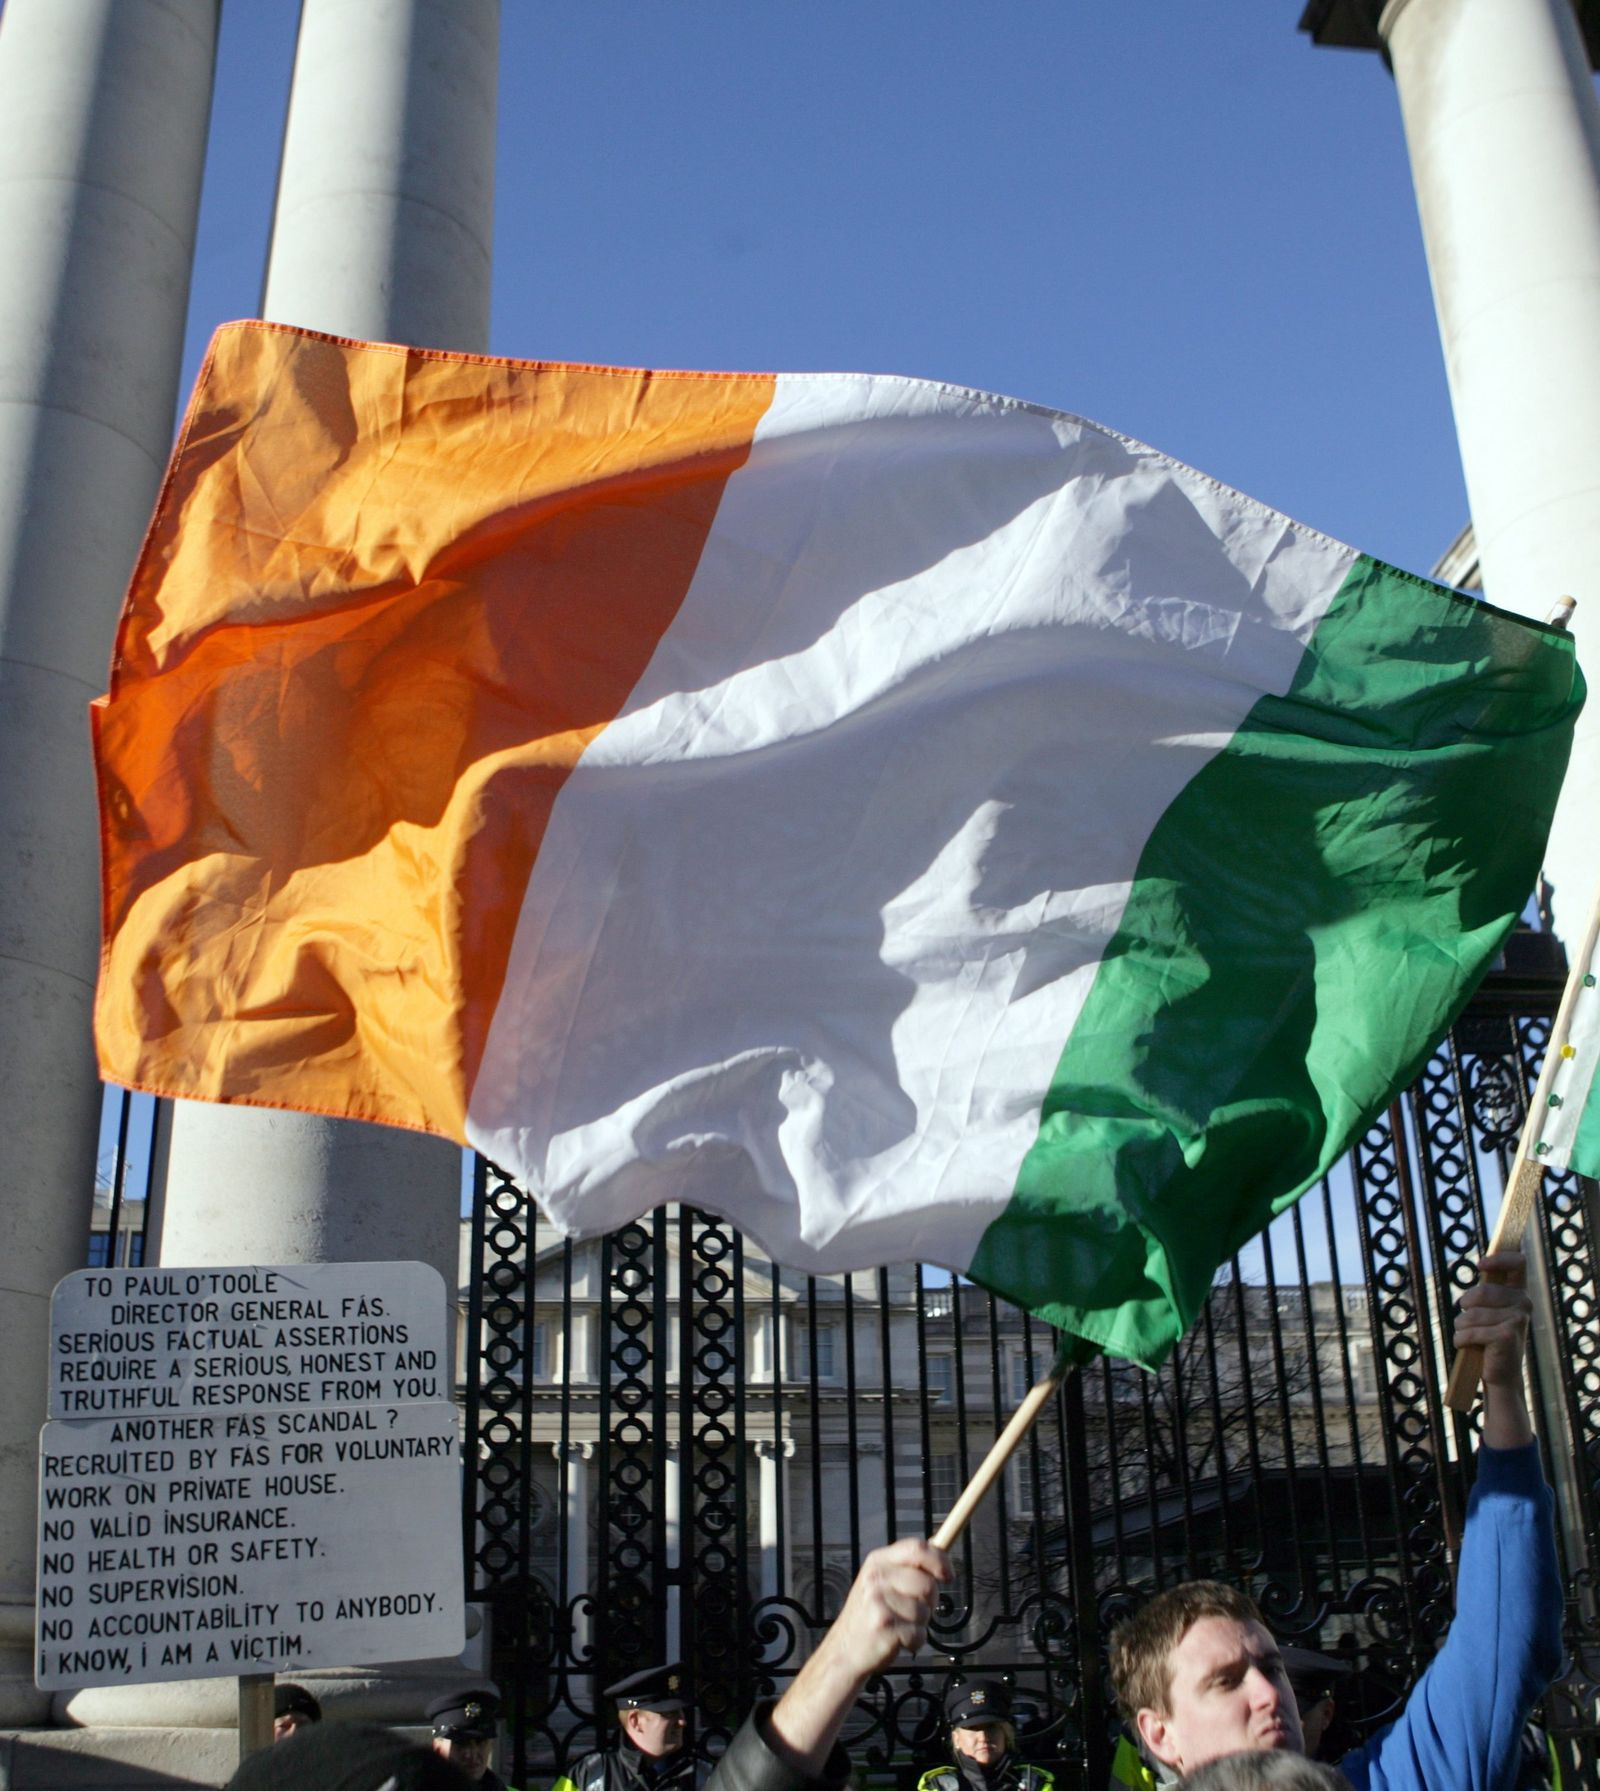 Irland Flagge bei Demo